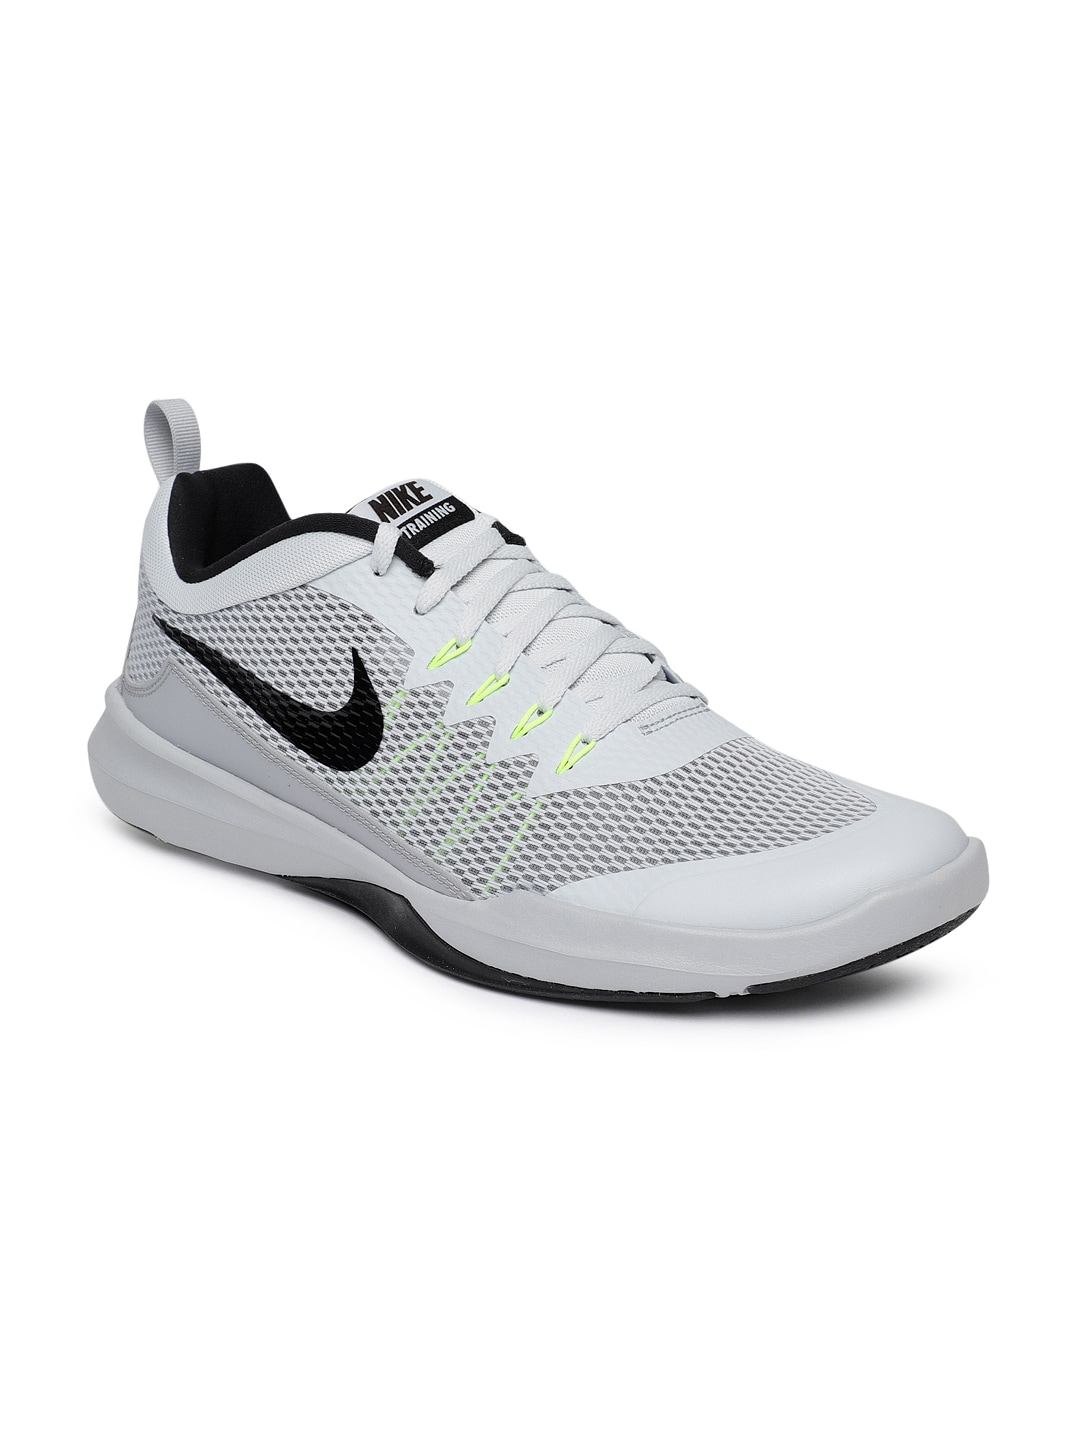 147358abccee61 Nike Shoes - Buy Nike Shoes for Men